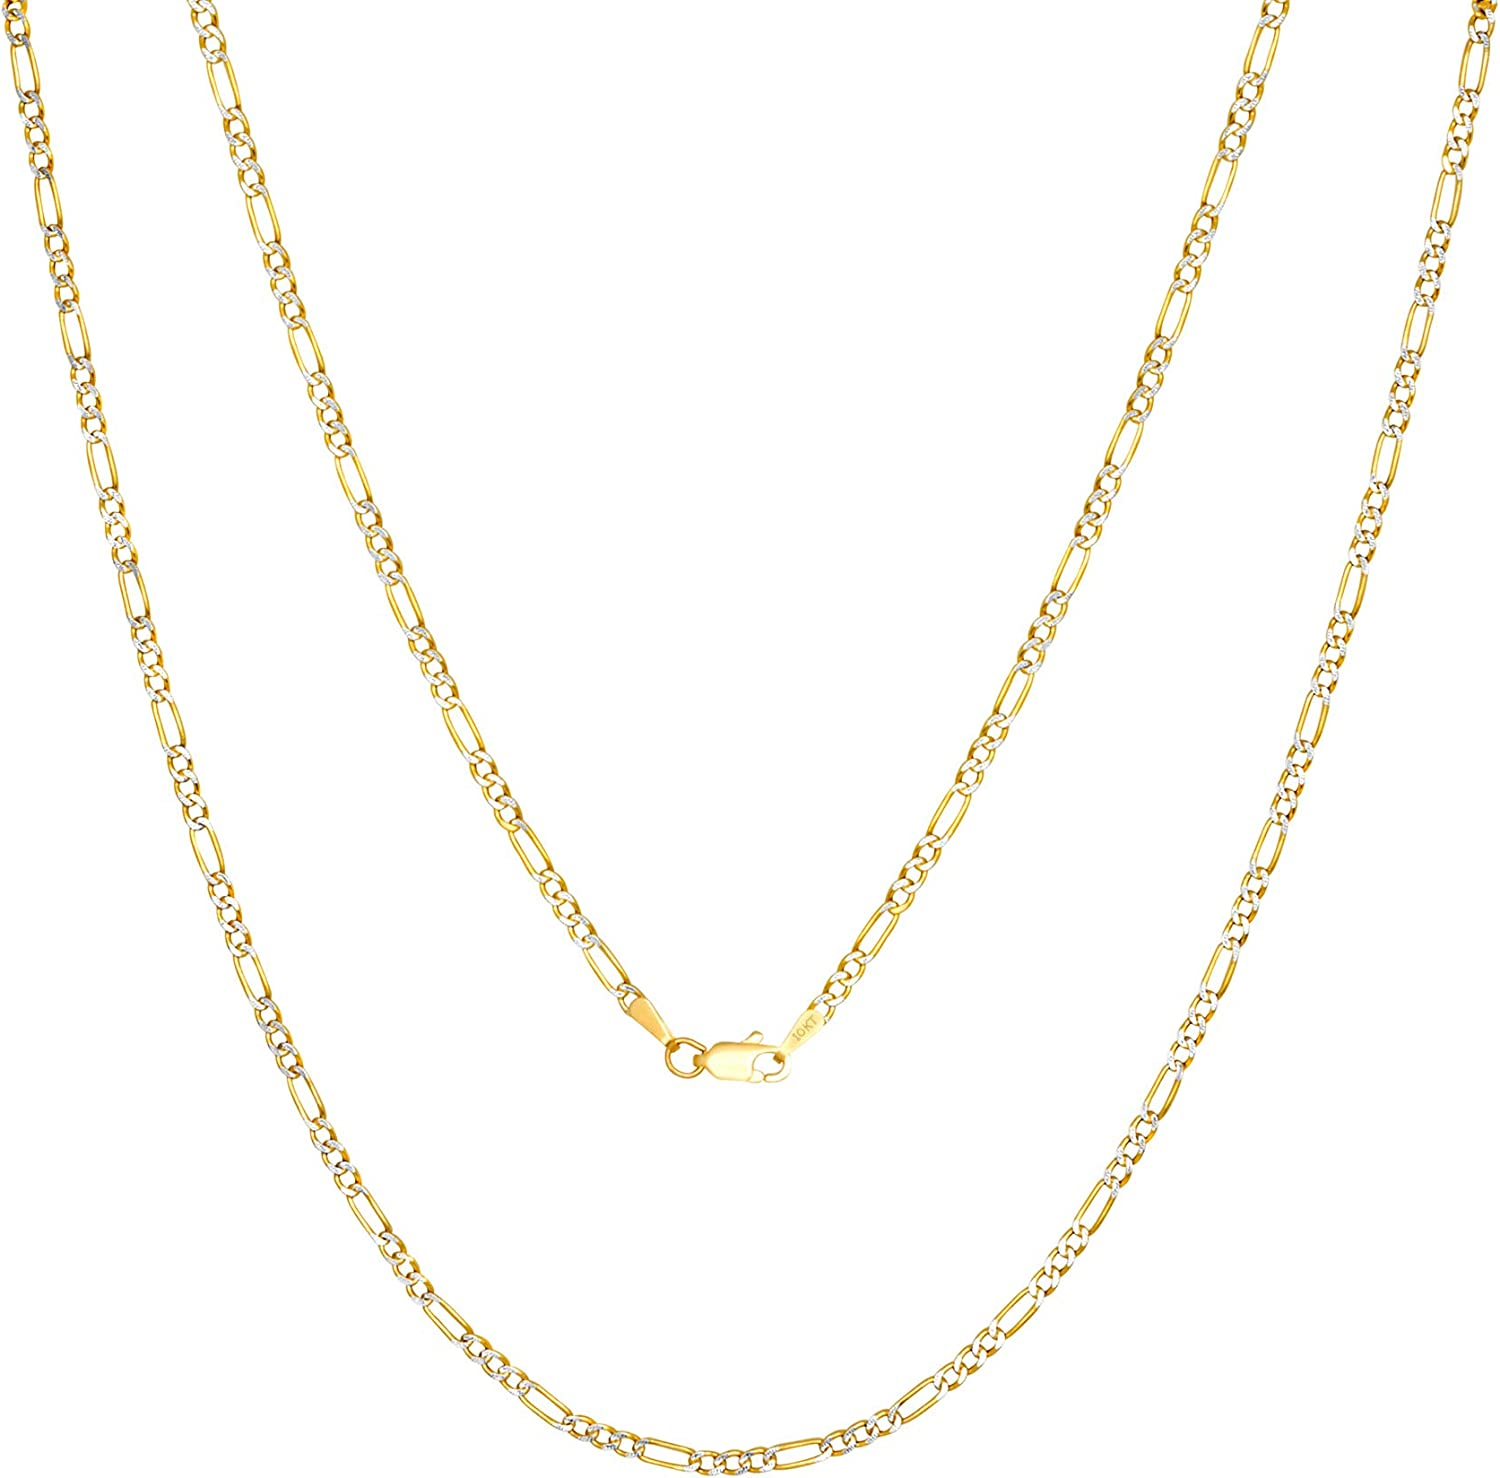 Nuragold 10k Yellow Gold 2.5mm Figaro Chain Link Diamond Cut Pave Two Tone Pendant Necklace, Mens Womens Lobster Lock 16